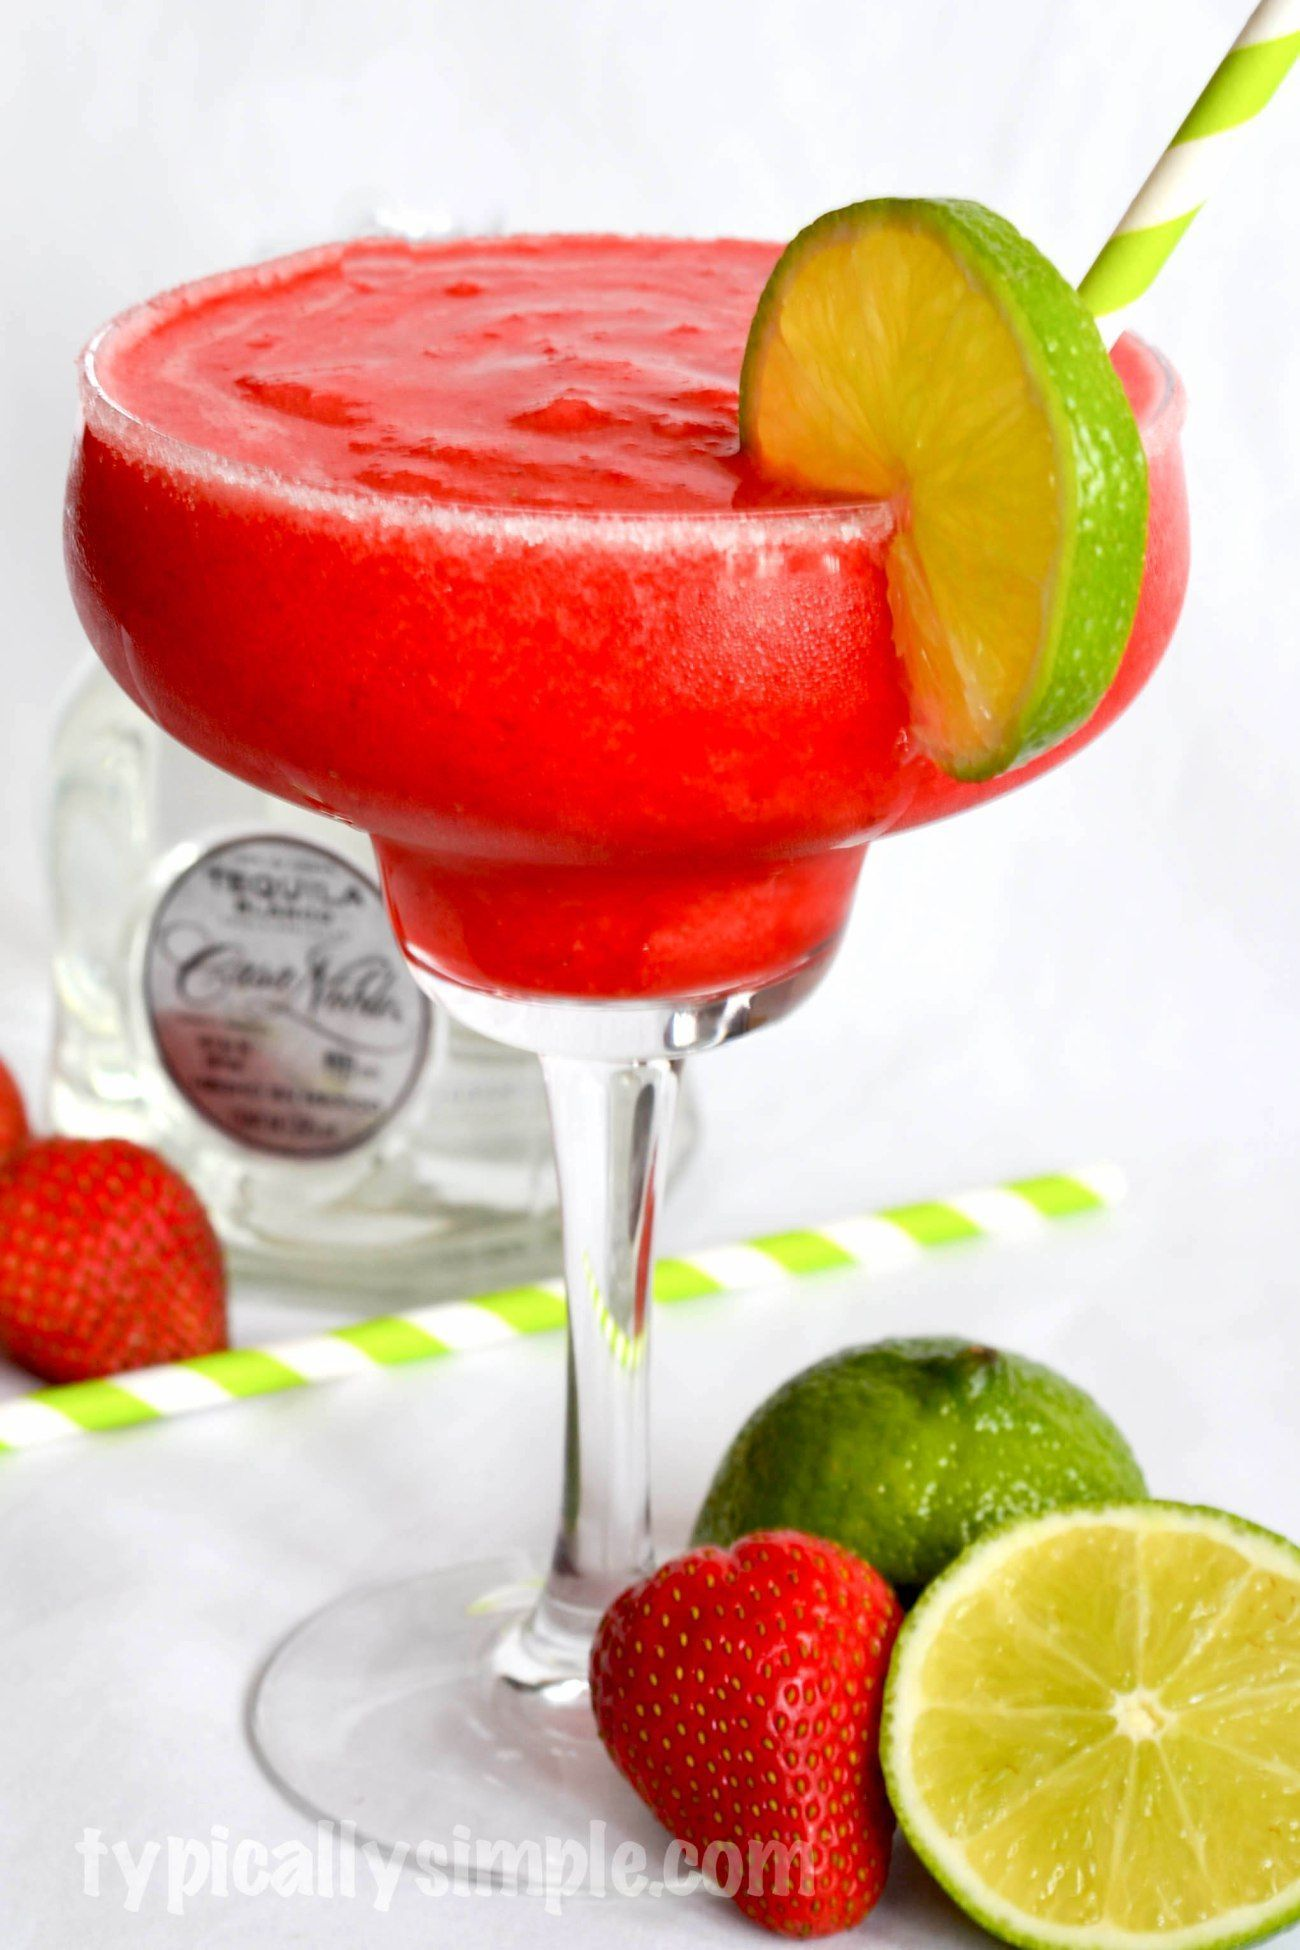 Strawberry-Lime Margarita #limemargarita A delicious strawberry-lime margarita recipe that is easy to make and perfect to enjoy while relaxing by the pool or at the beach! #limemargarita Strawberry-Lime Margarita #limemargarita A delicious strawberry-lime margarita recipe that is easy to make and perfect to enjoy while relaxing by the pool or at the beach! #frozenmargaritarecipes